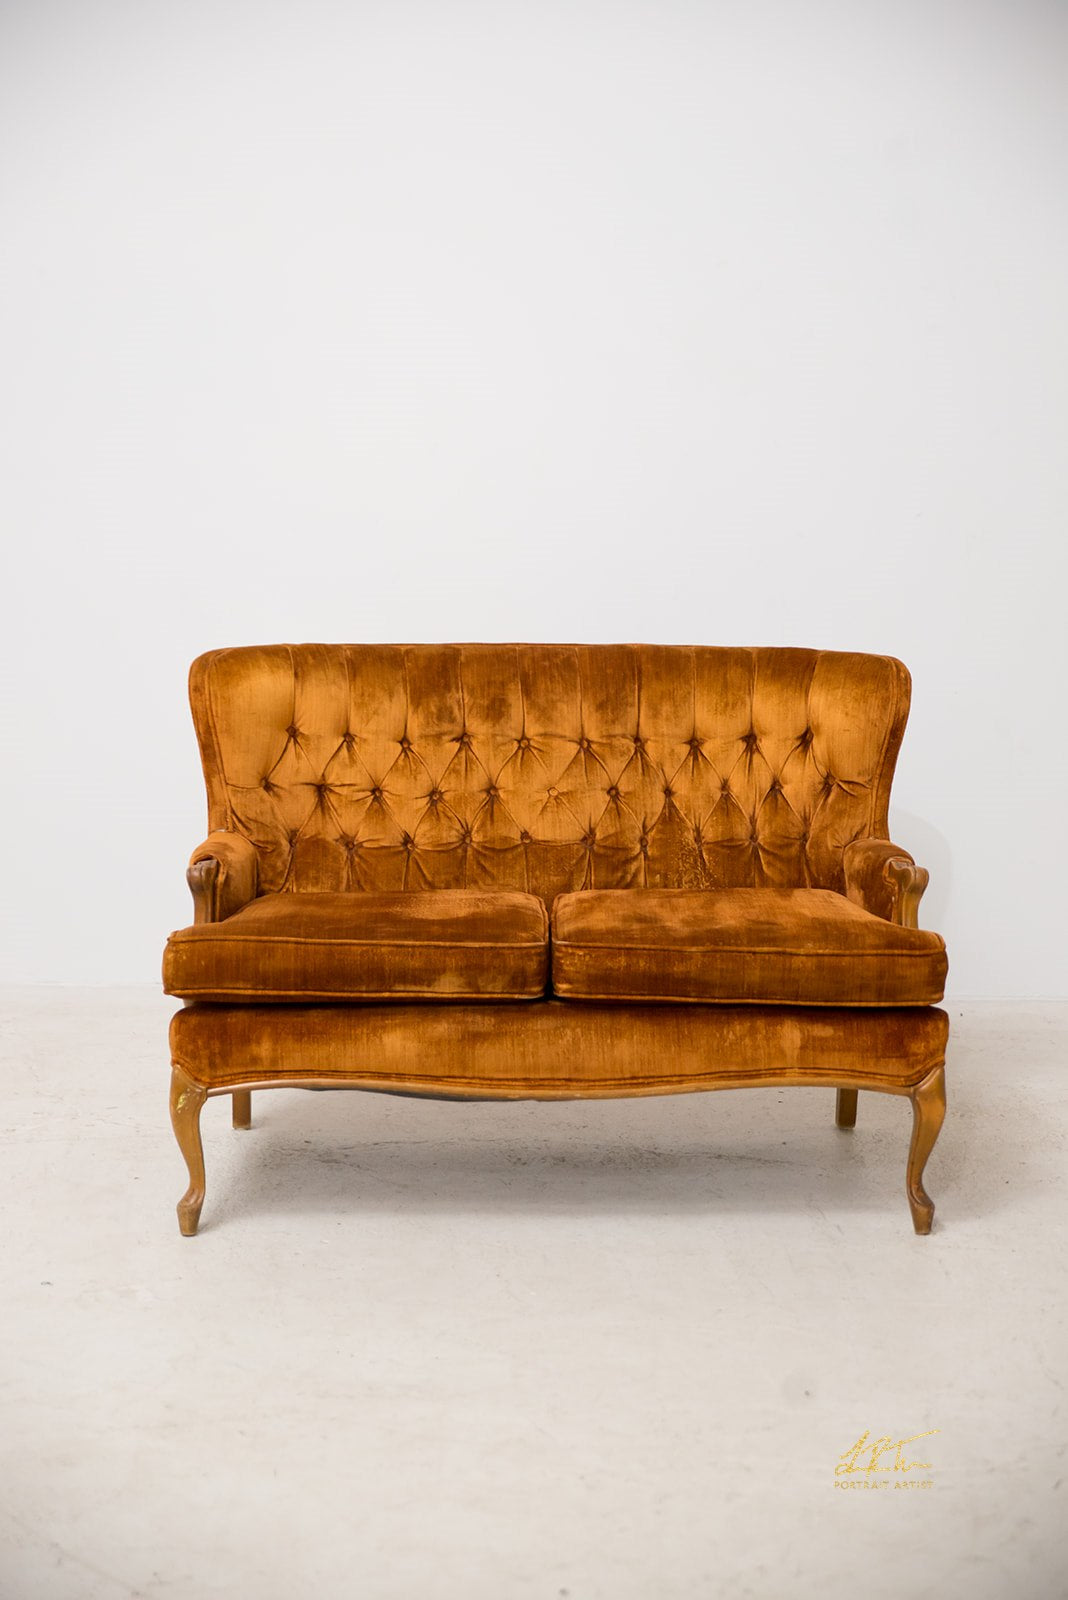 Pumpkin orange or gold tufted, antique love seat for rent.